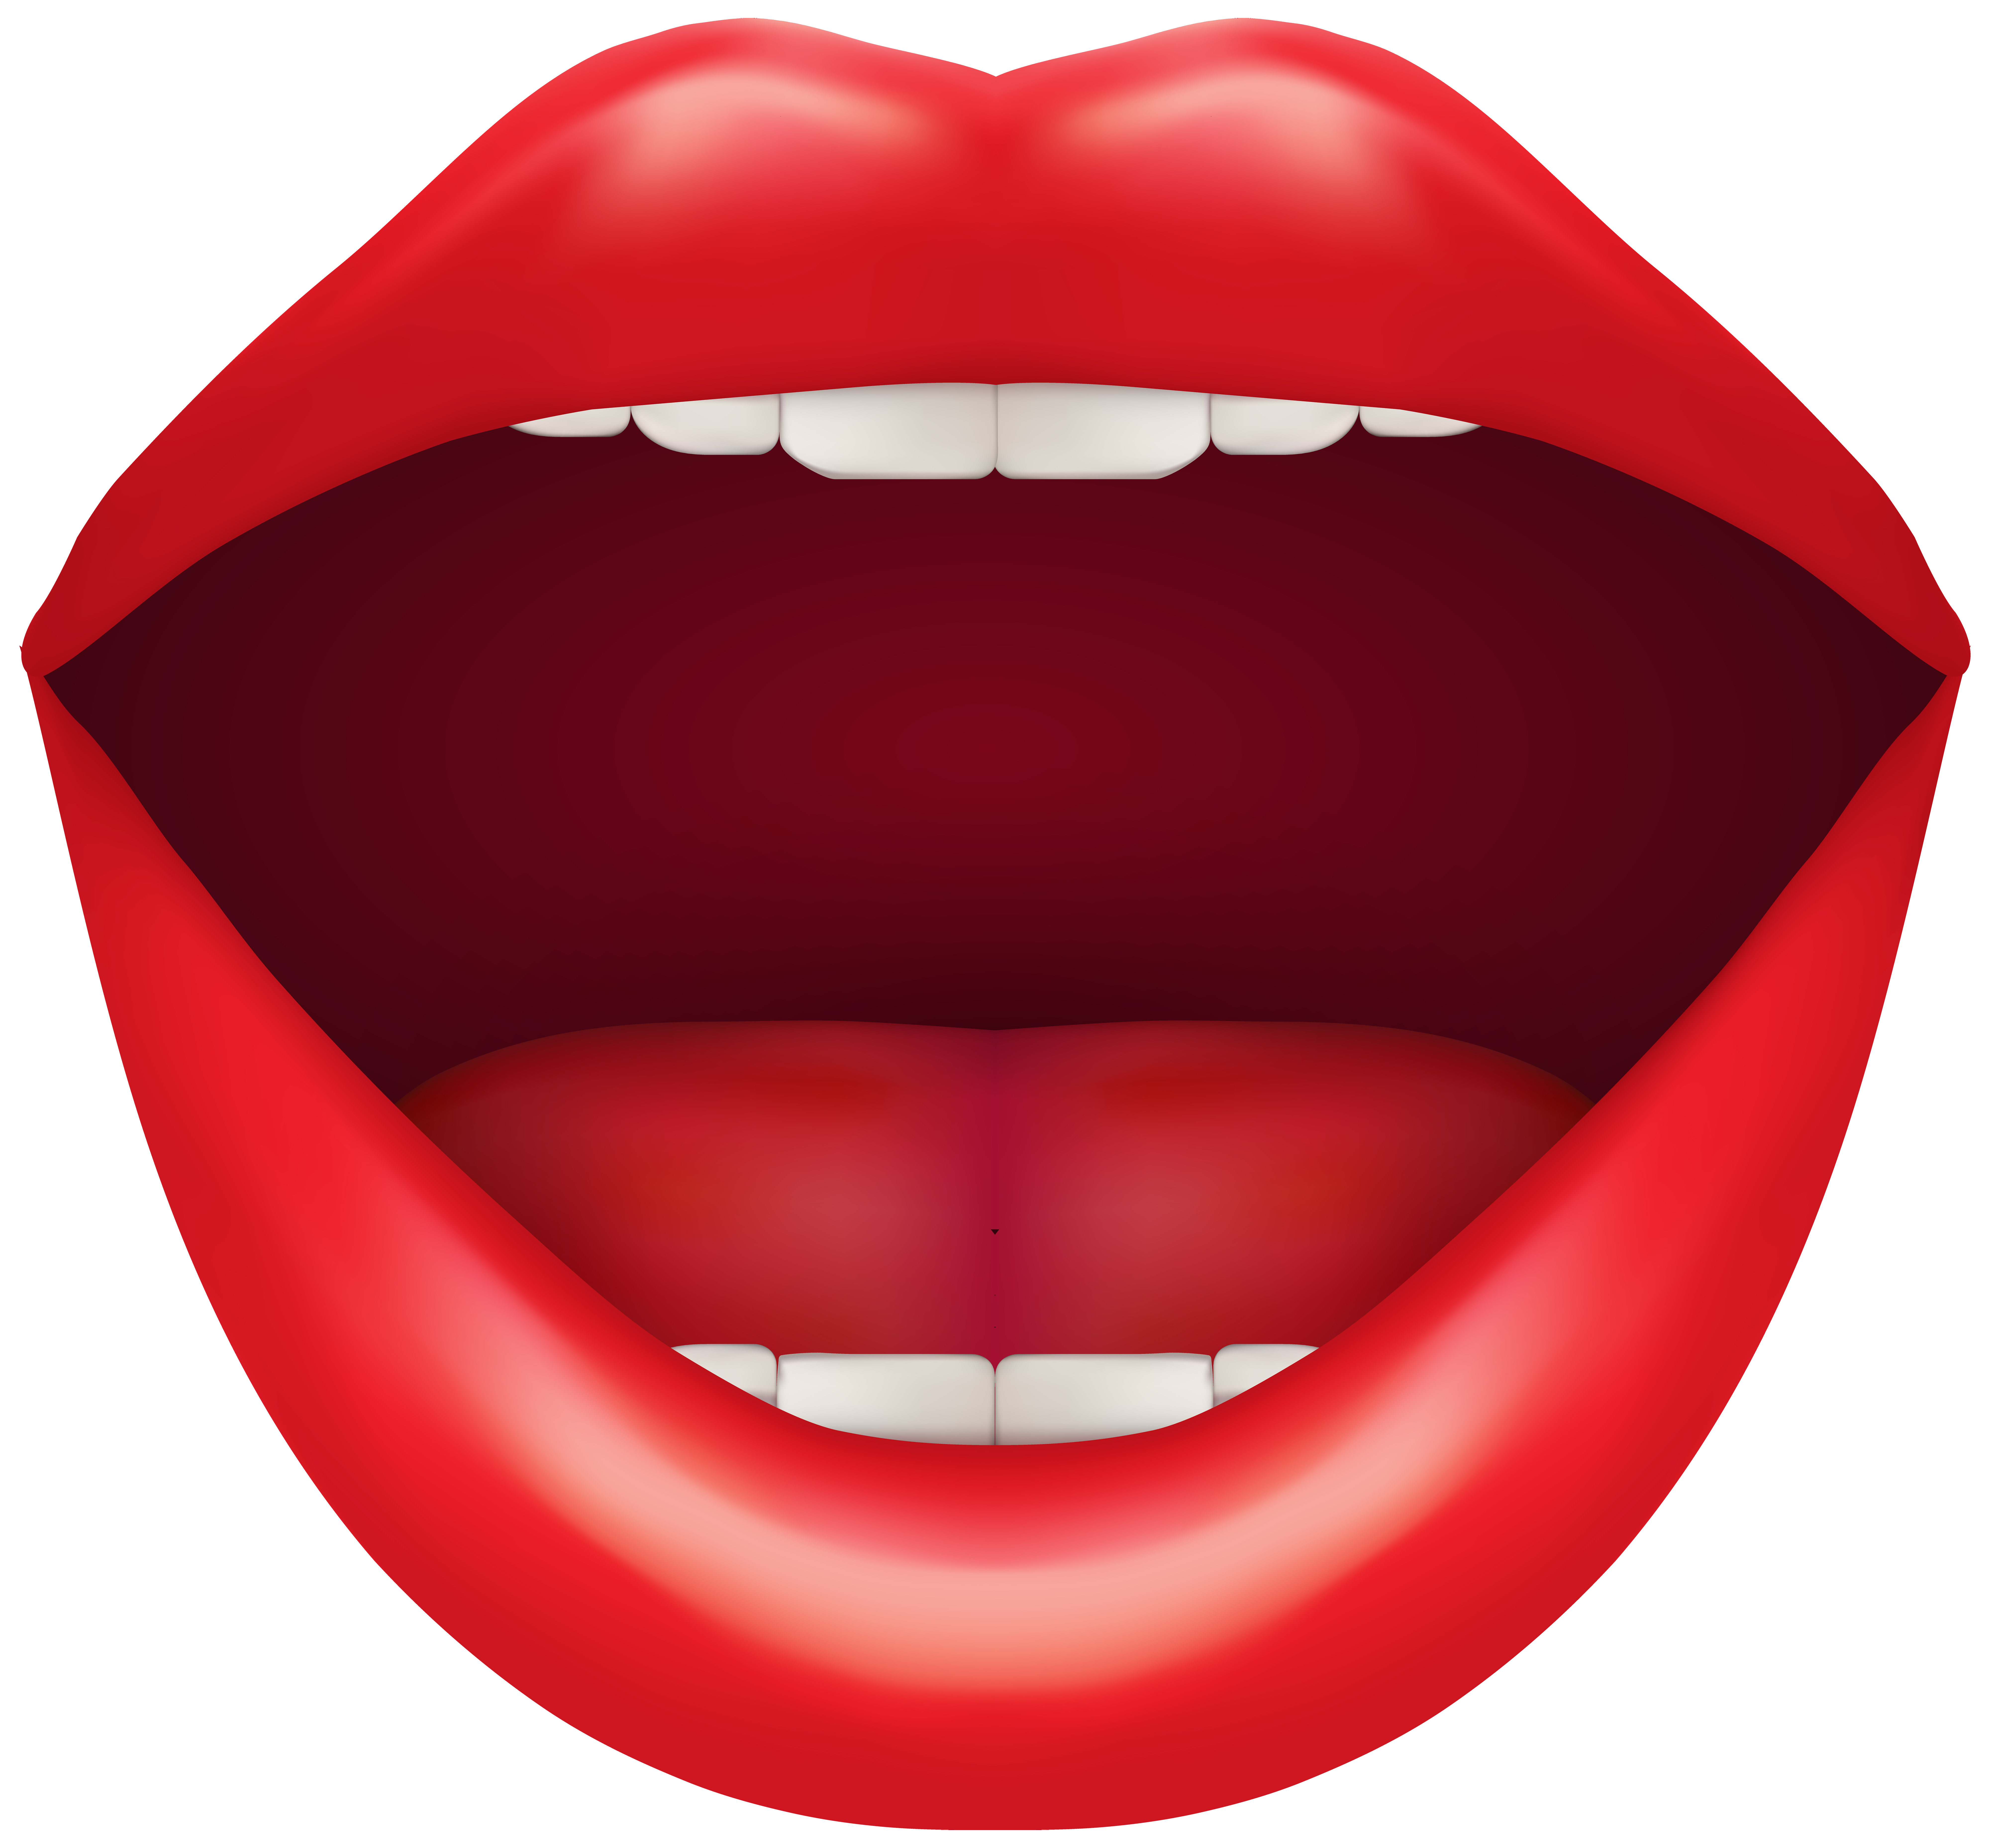 Mouth png clipart. Open red clip art